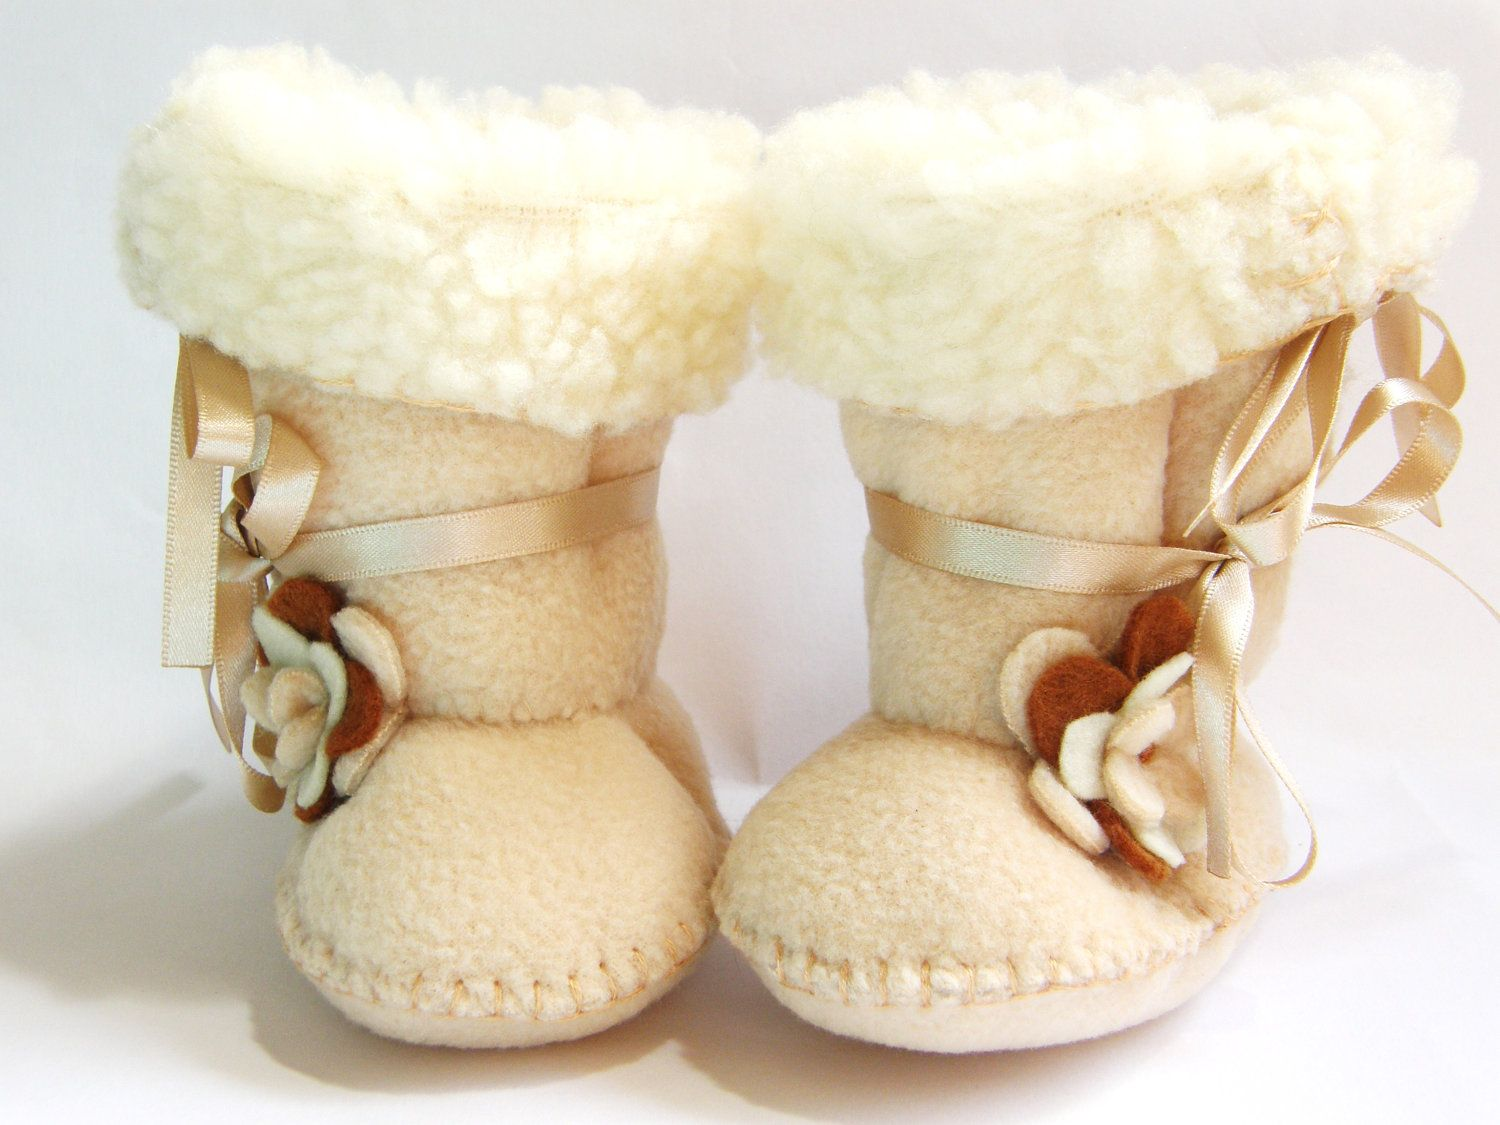 Cafe Latte Baby Boots Ugg Style Fleece Baby Booties with Faux ...